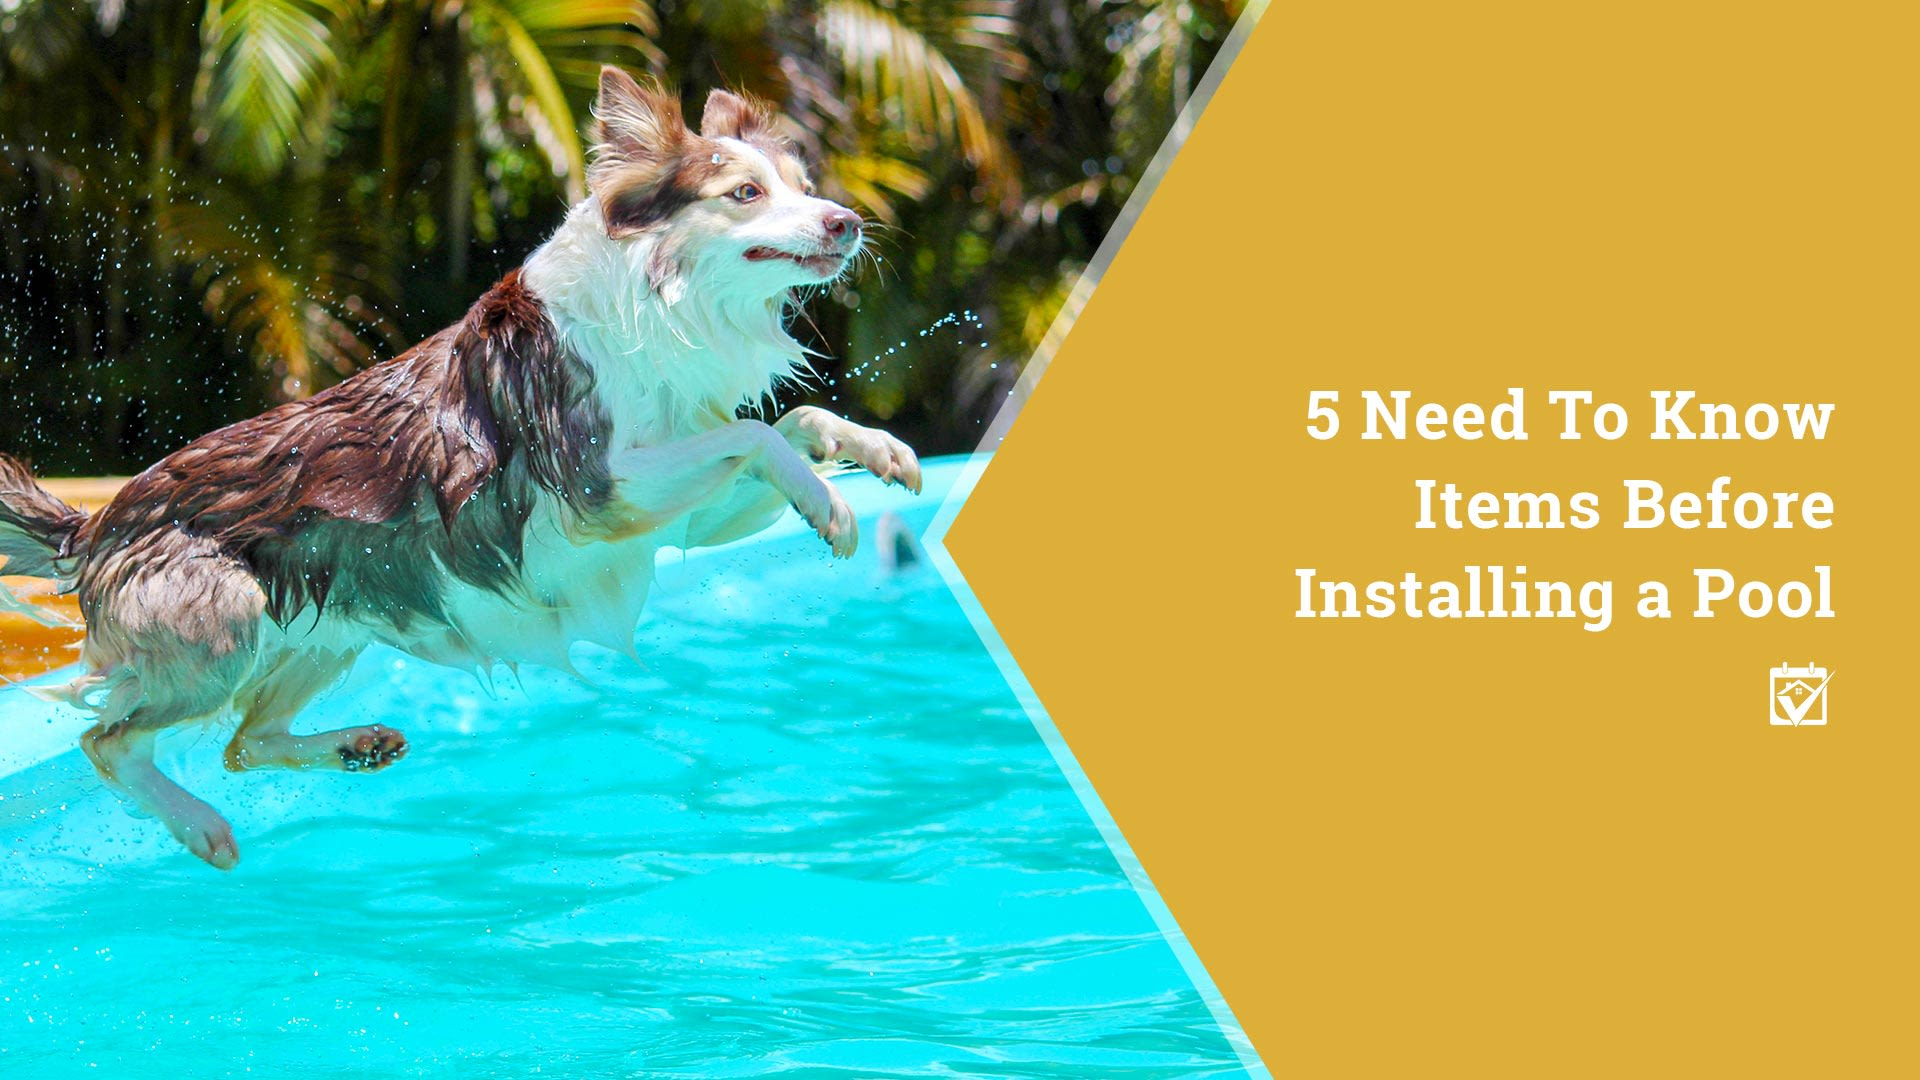 5 Need To Know Items Before Installing a Pool